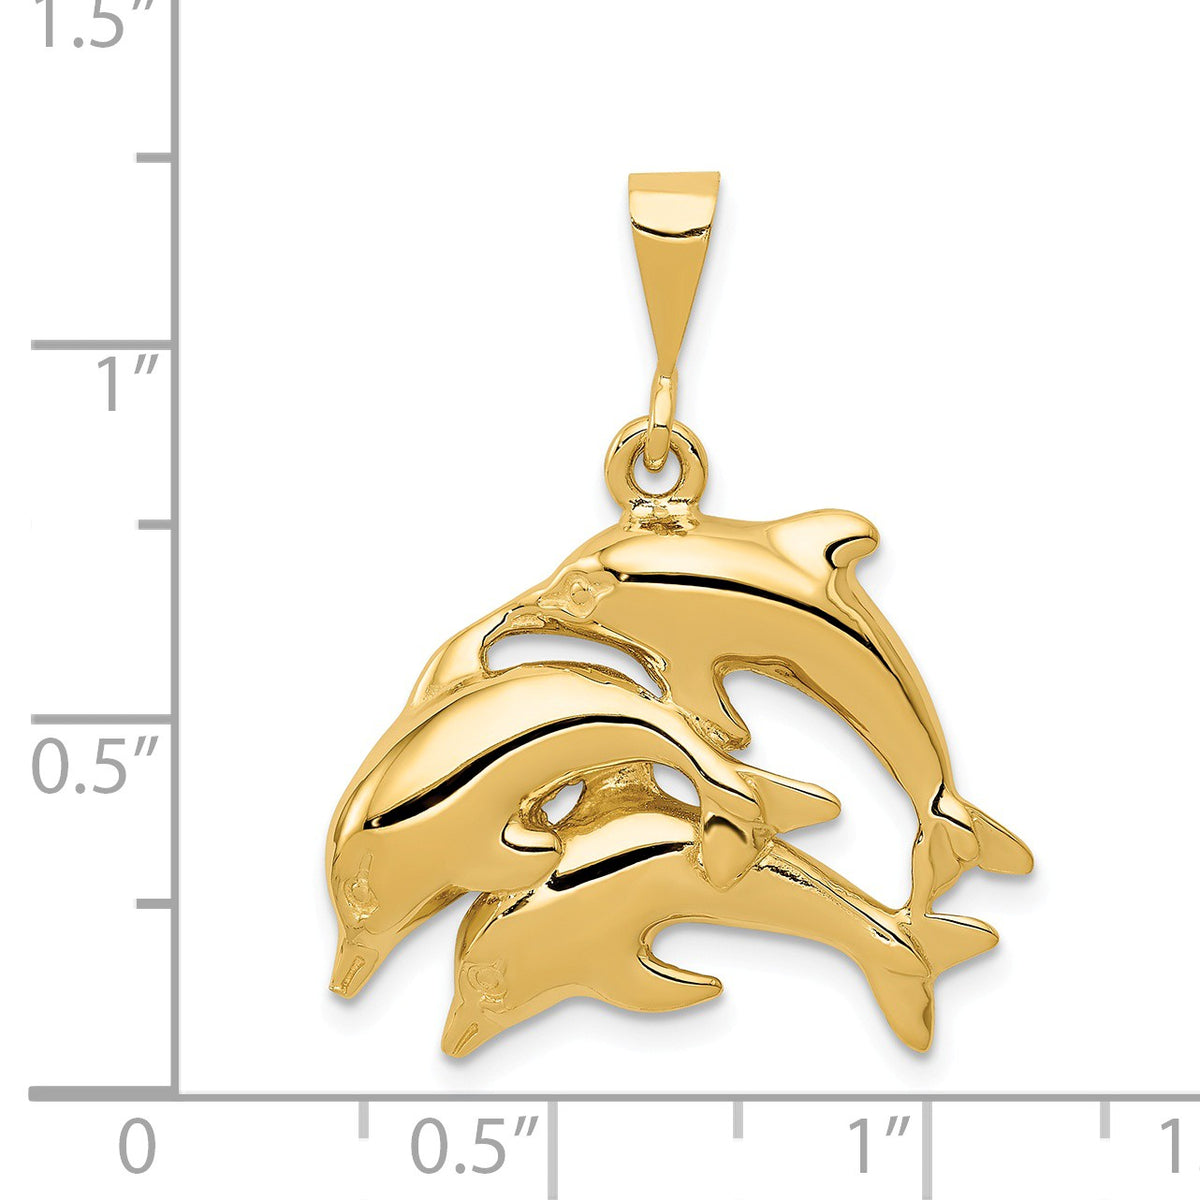 Alternate view of the 14k Yellow Gold Dolphin Pod Pendant by The Black Bow Jewelry Co.